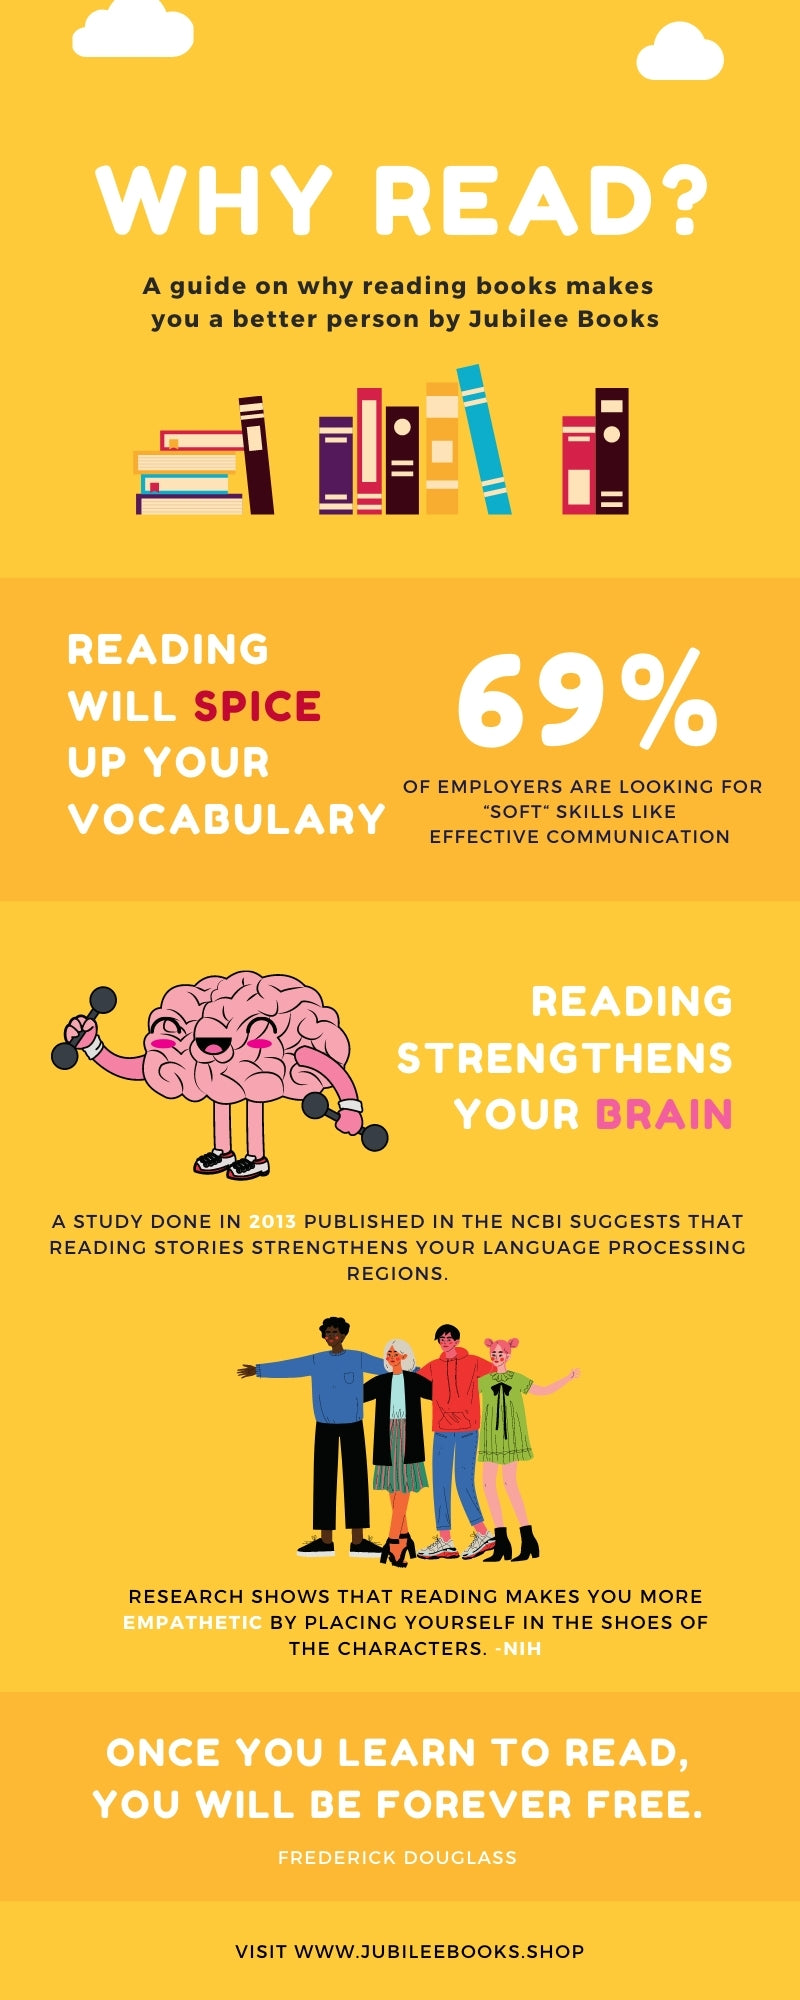 """Reading  will spice  up your vocabulary: 69% Of employers are looking for """"soft"""" skills like  effective communication; Reading strengthens your brain: A study done in 2013 Published in the NCBI suggests that reading stories strengthens your language processing regions; Research also shows that reading makes you more empathetic by placing yourself in the shoes of the characters; Once you learn to read,  you will be forever Free, Frederick Douglass; www.jubileebooks.shop"""